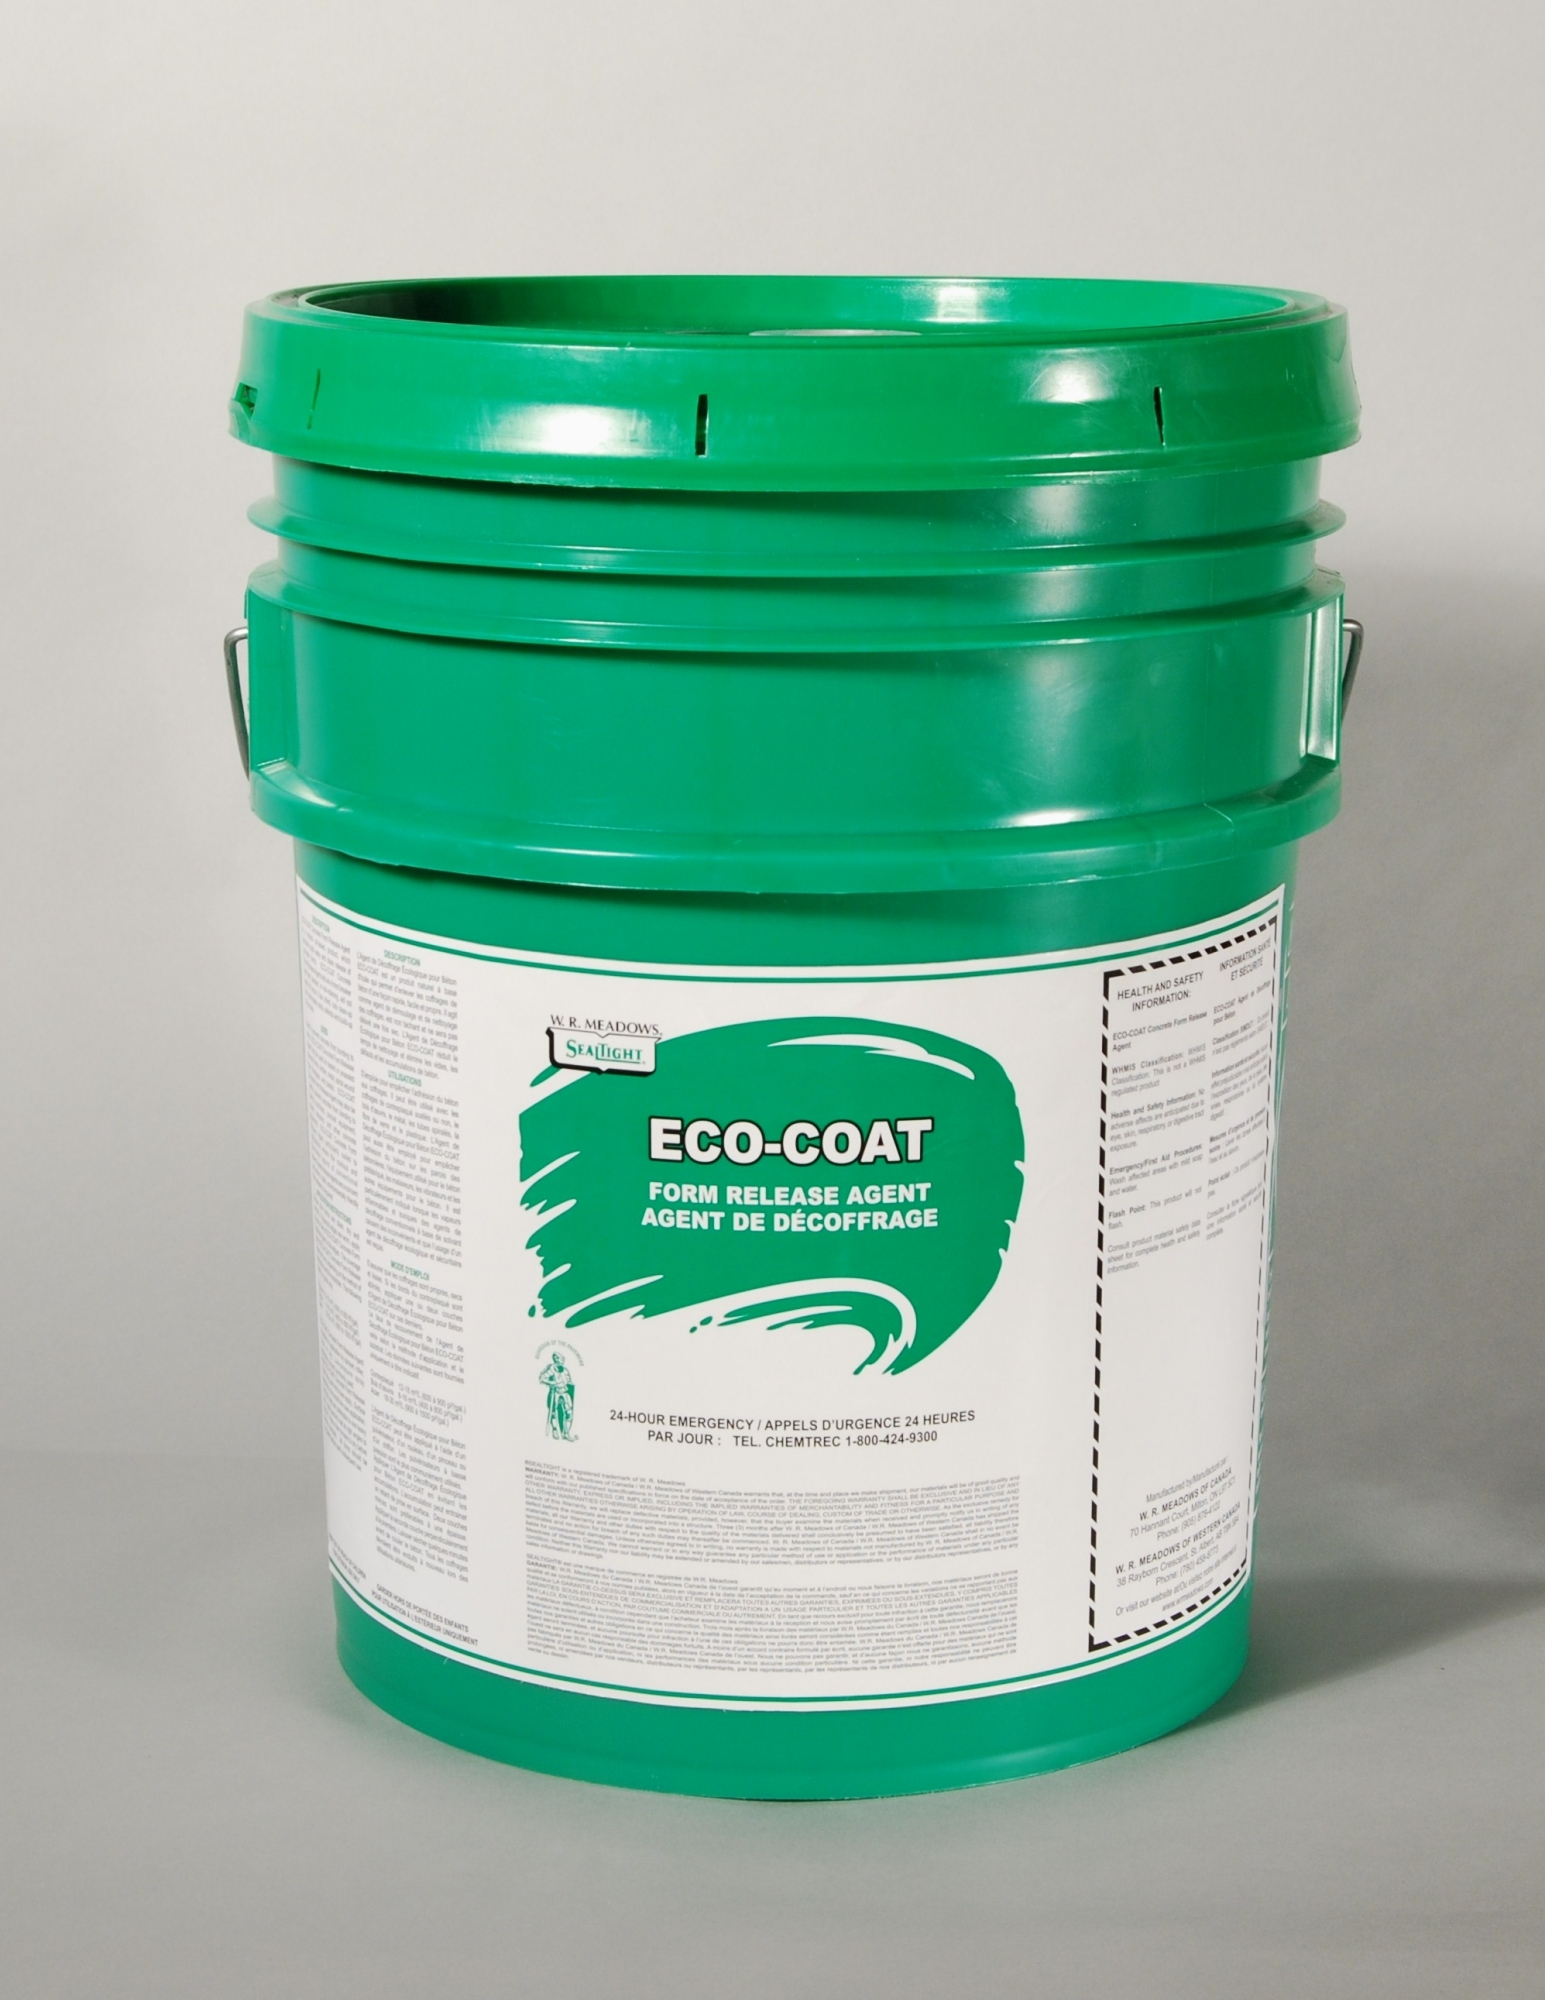 Eco coat form release agent 205l nca 9771 for Northland motor oils lubricants